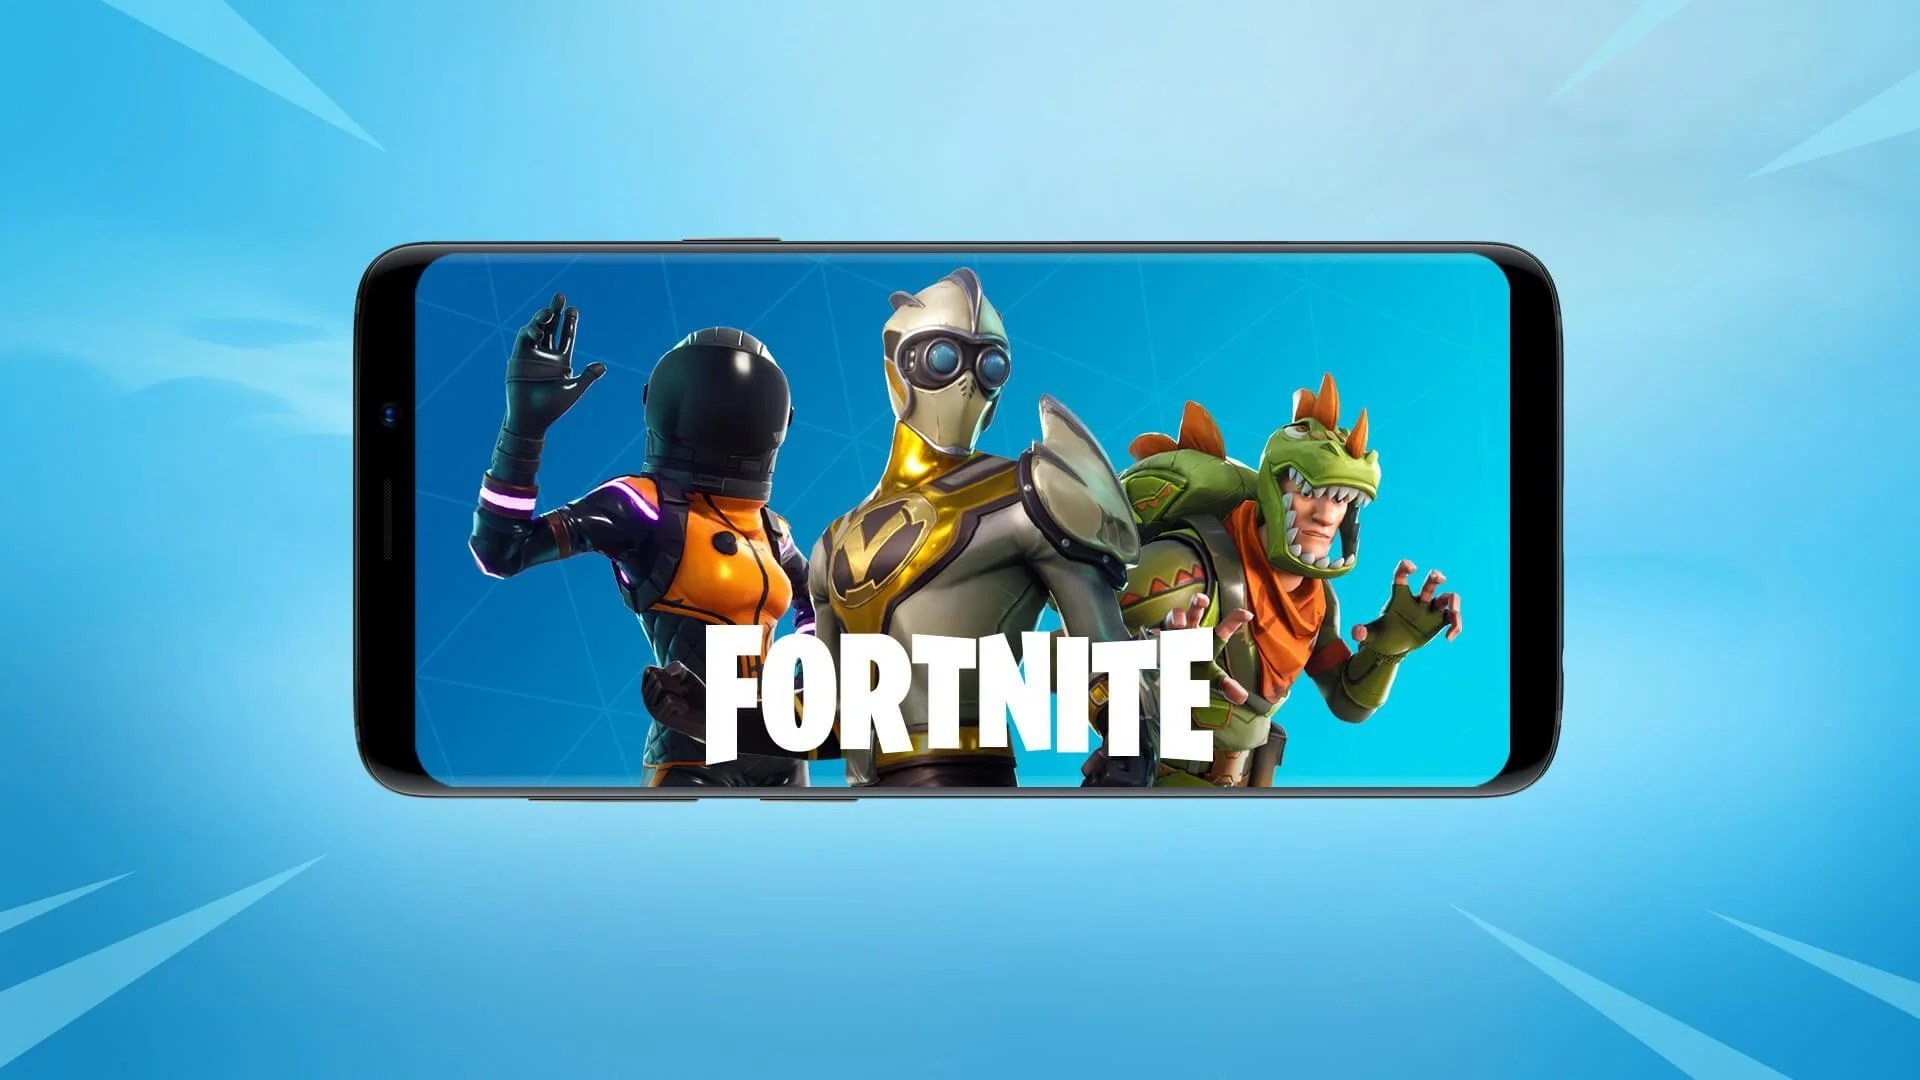 How To Download Fortnite For Android After Epic Games Blocked Mobile App From Google Play The